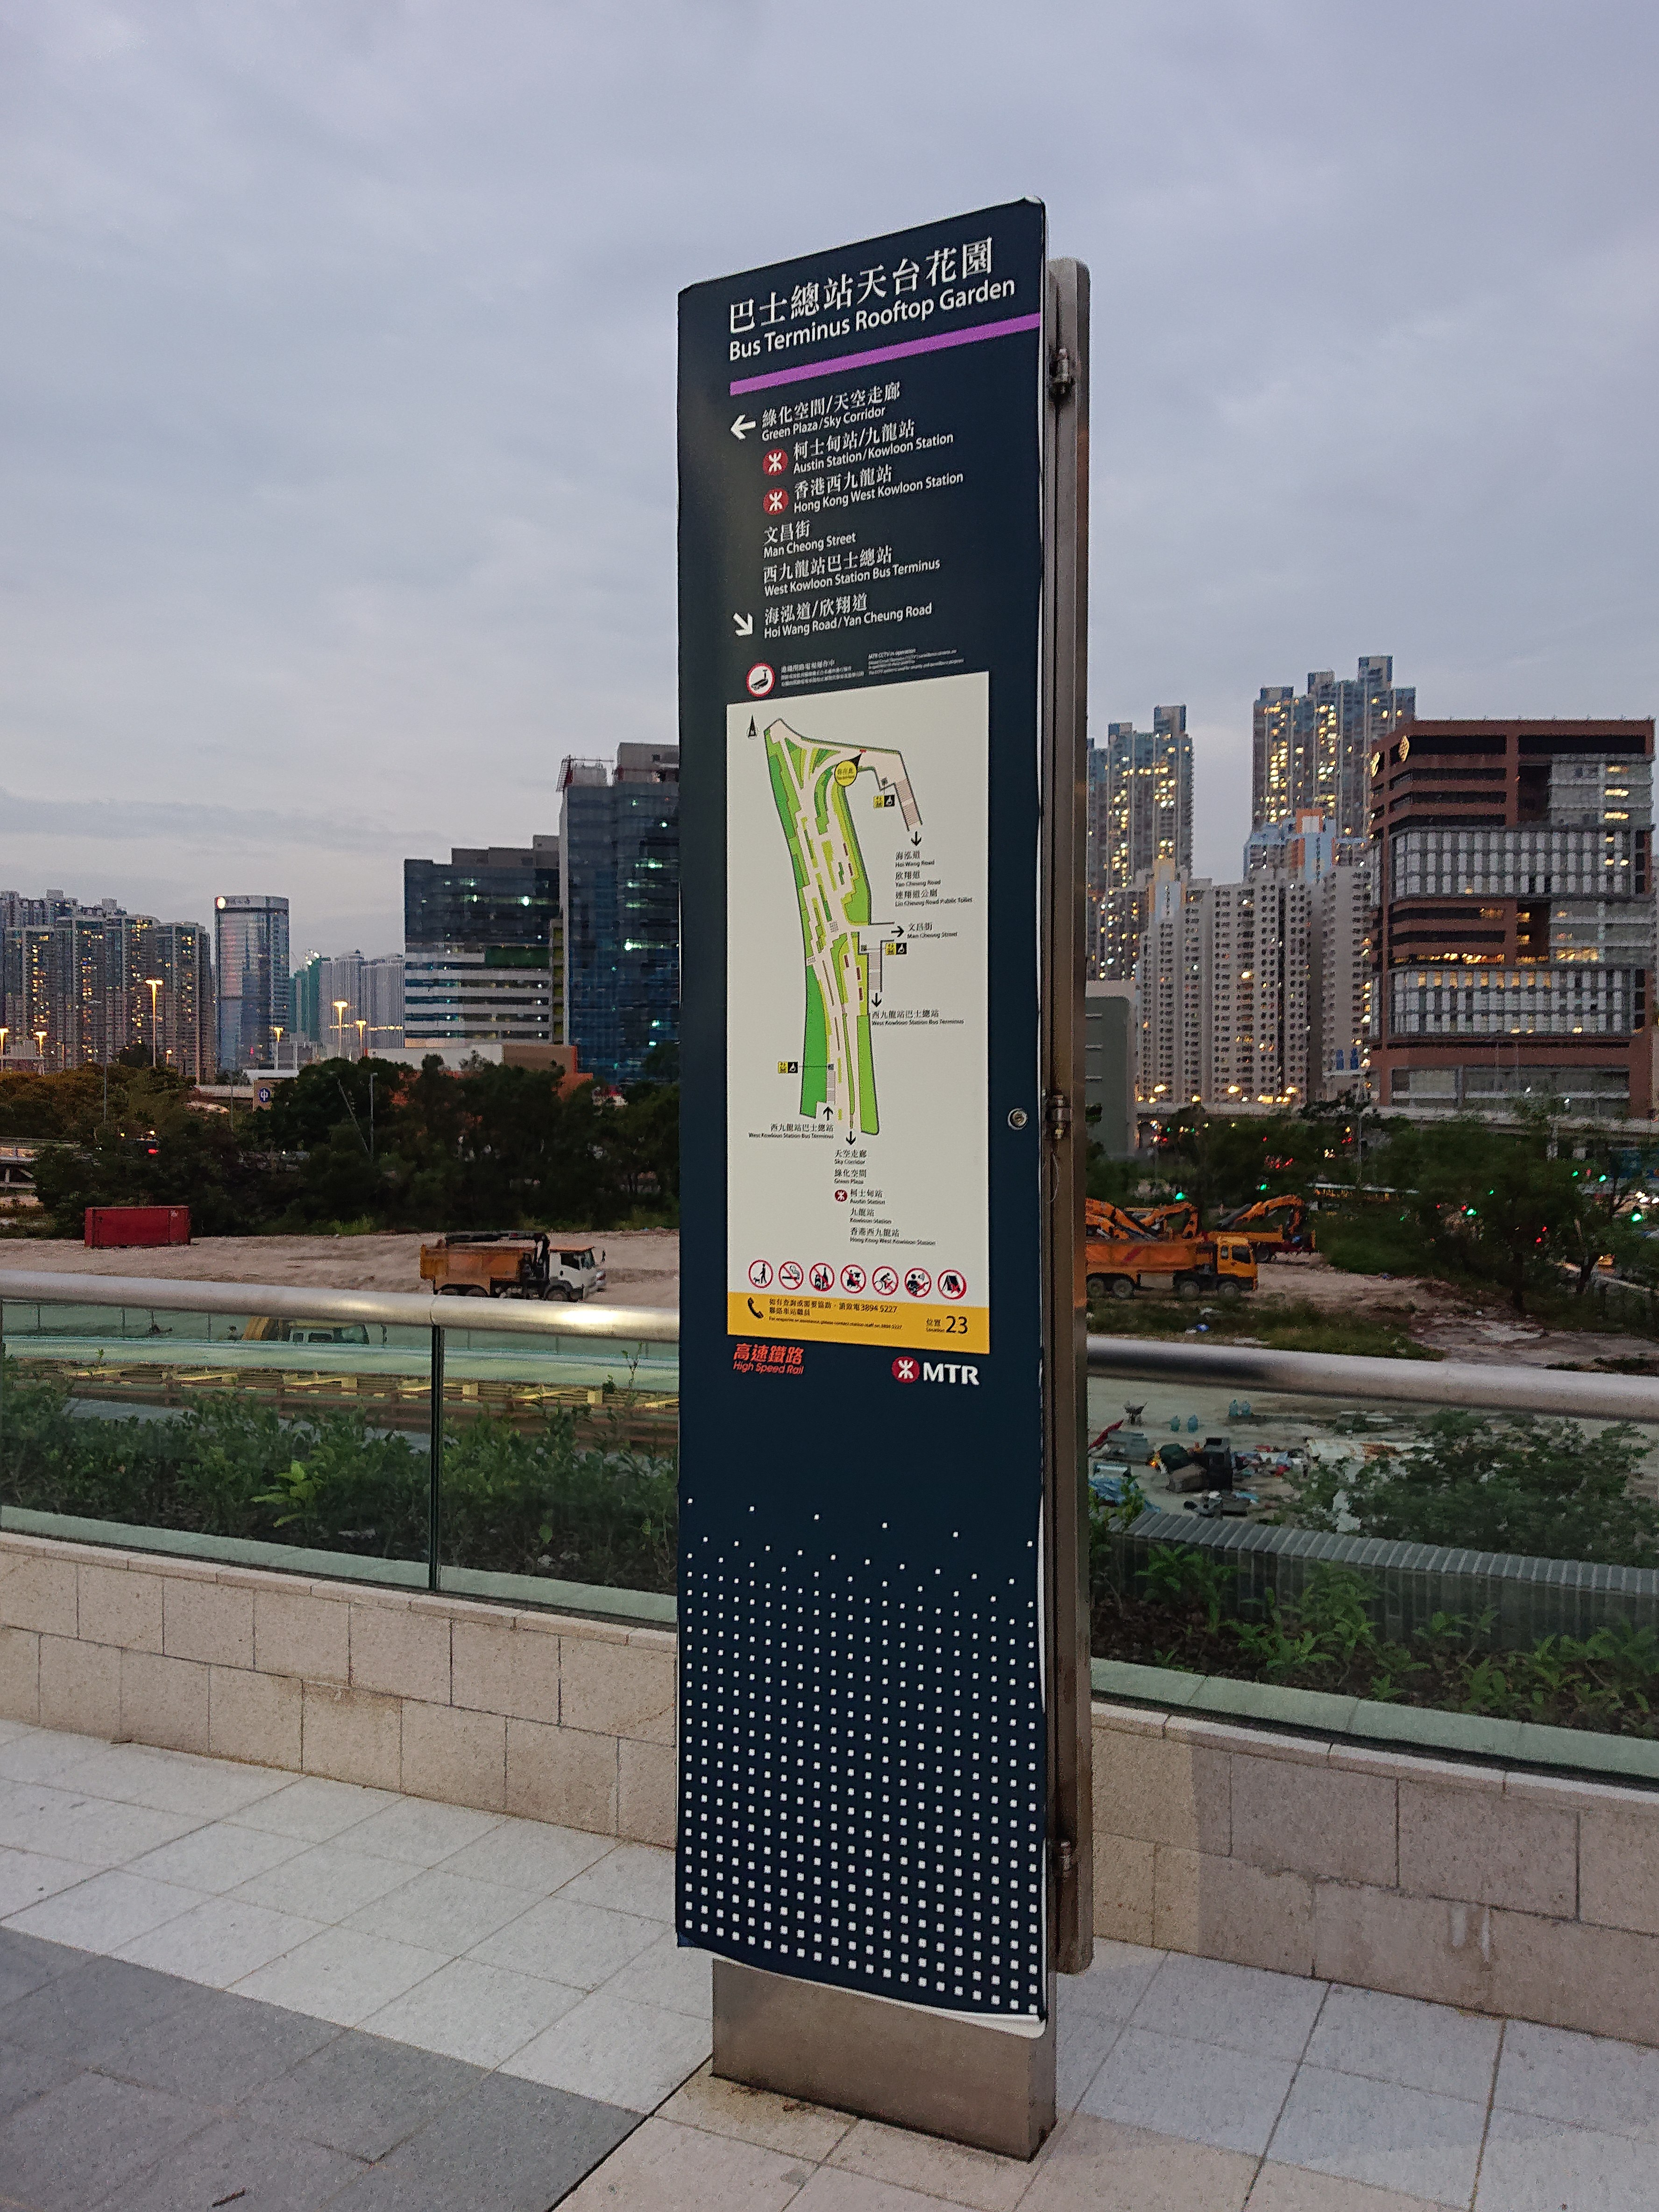 FILE WEST KOWLOON STATION BUS TERMINUS ROOFTOP GARDEN SIGN